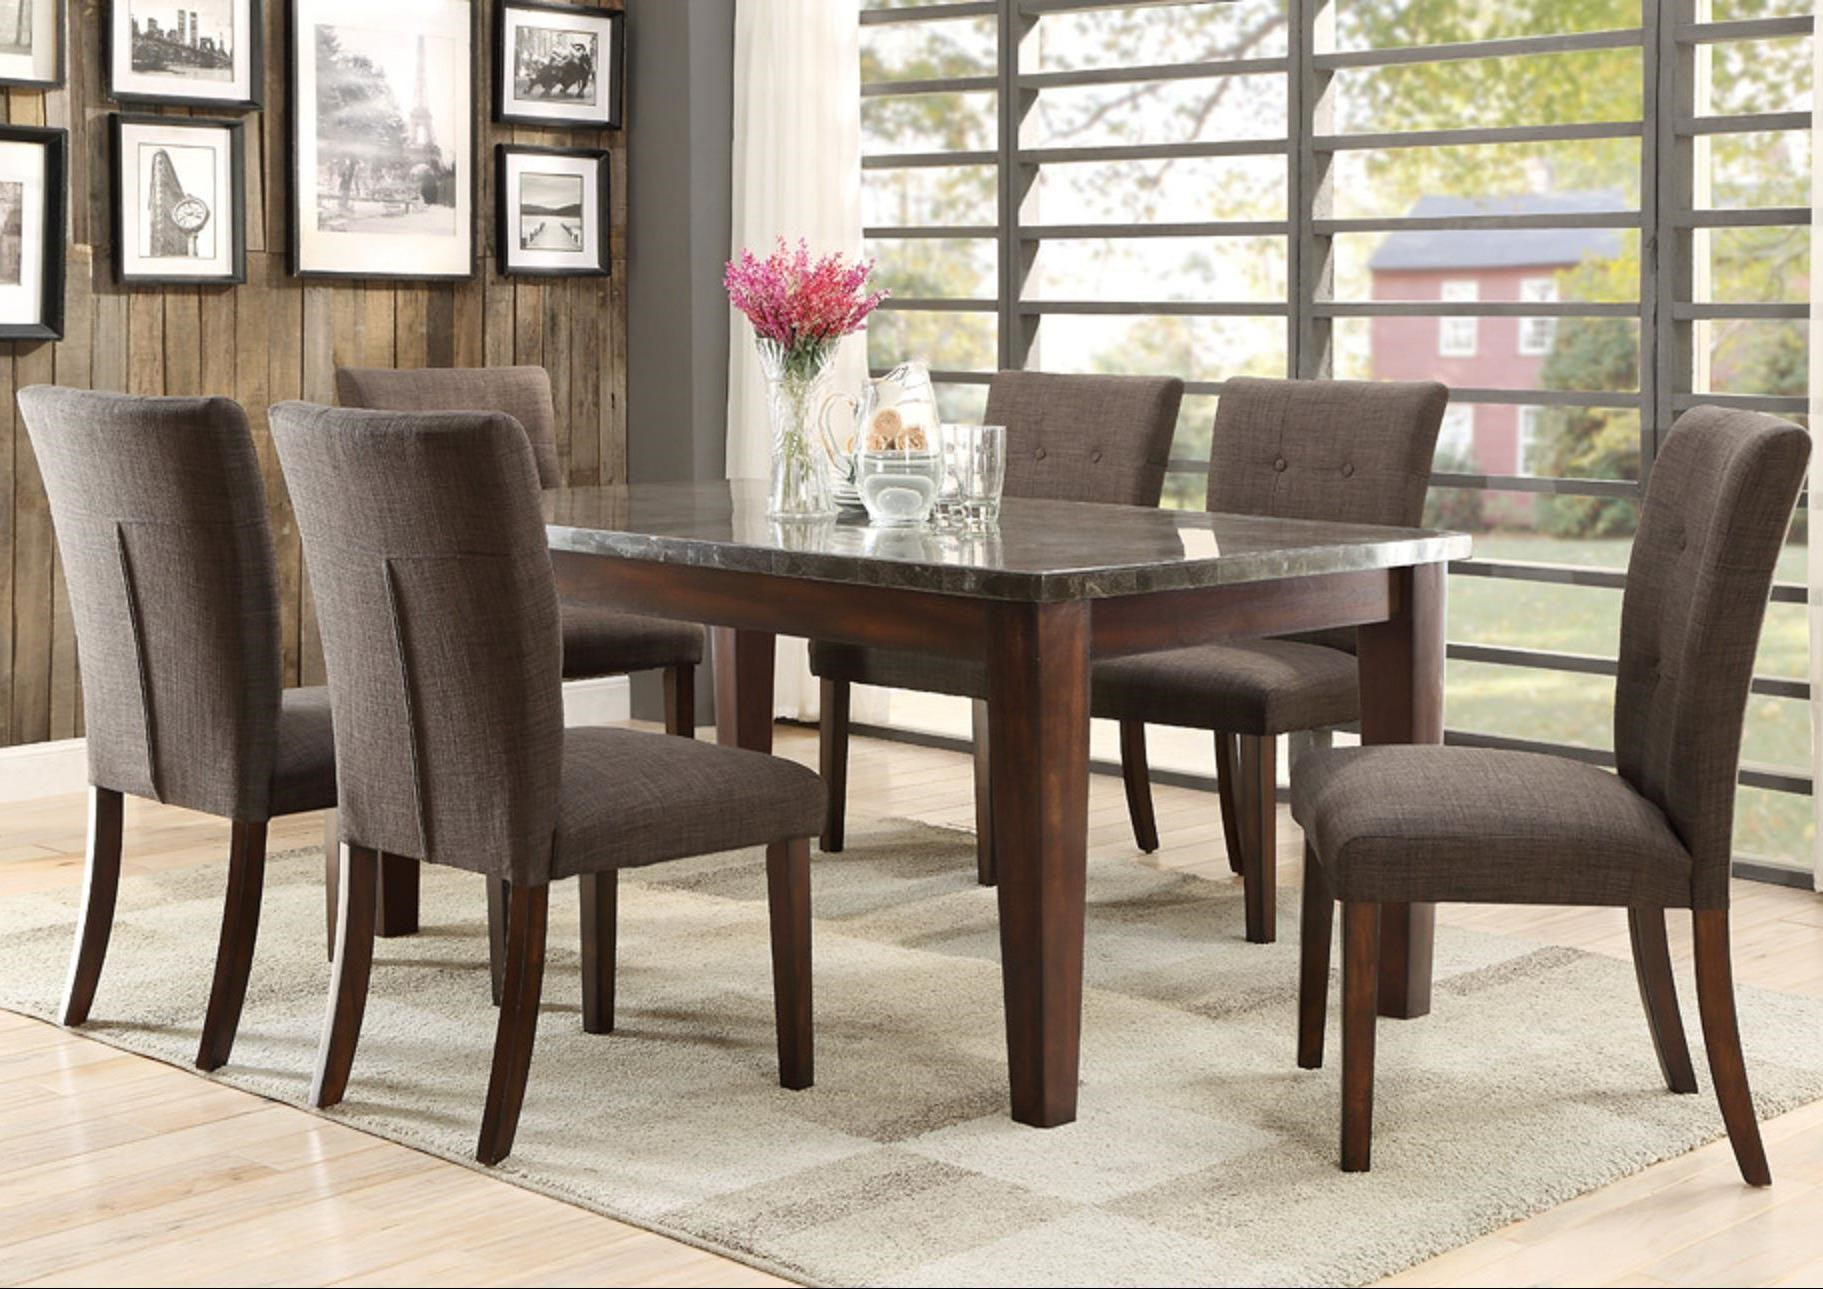 Homelegance Dorritt 7 Piece Dining Set With Bluestone Table Top